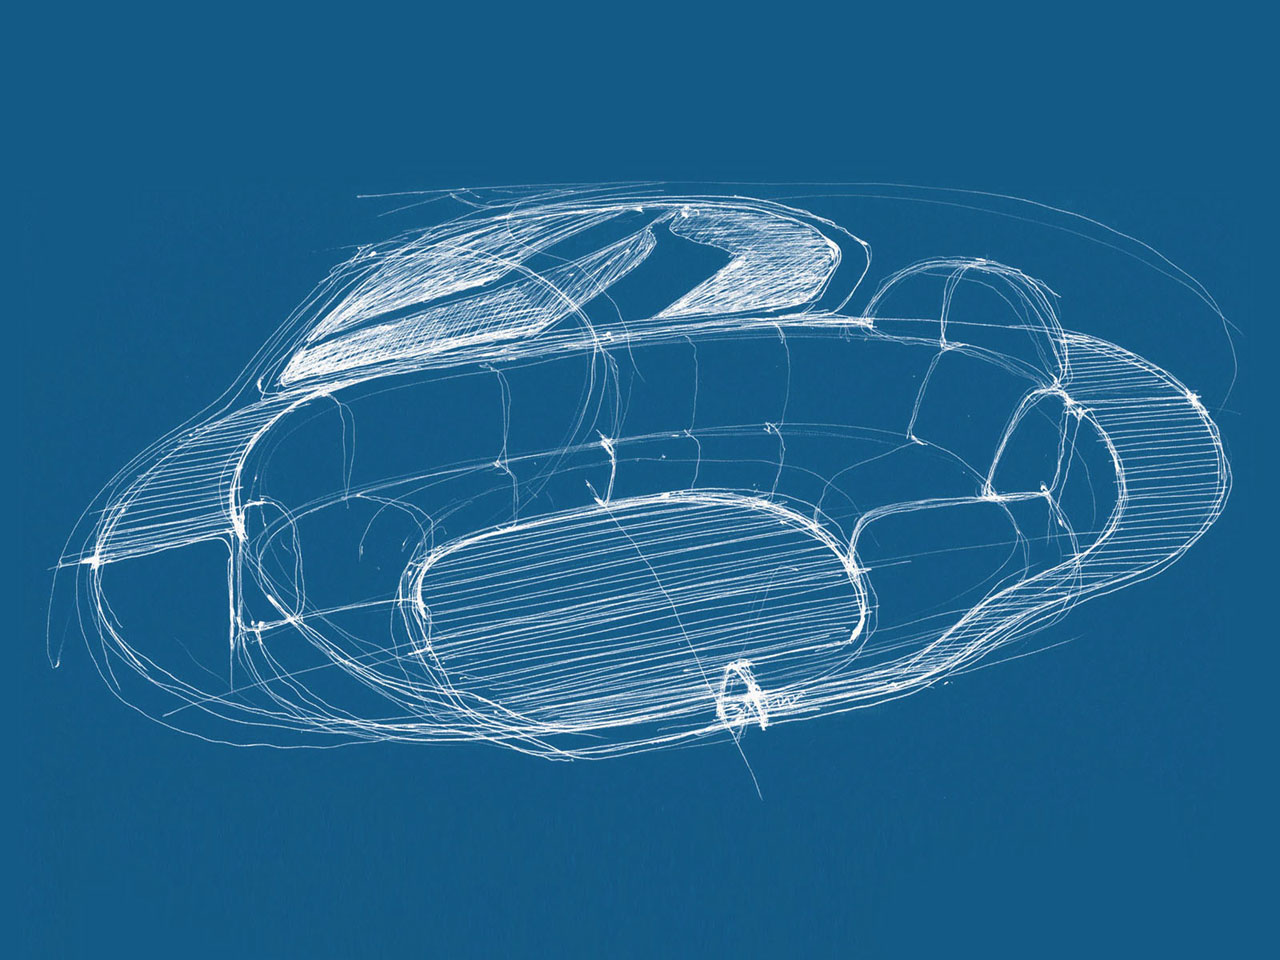 BMW Spheres Project by Alfredo Haberli - Vessel Concept - Interior drawing